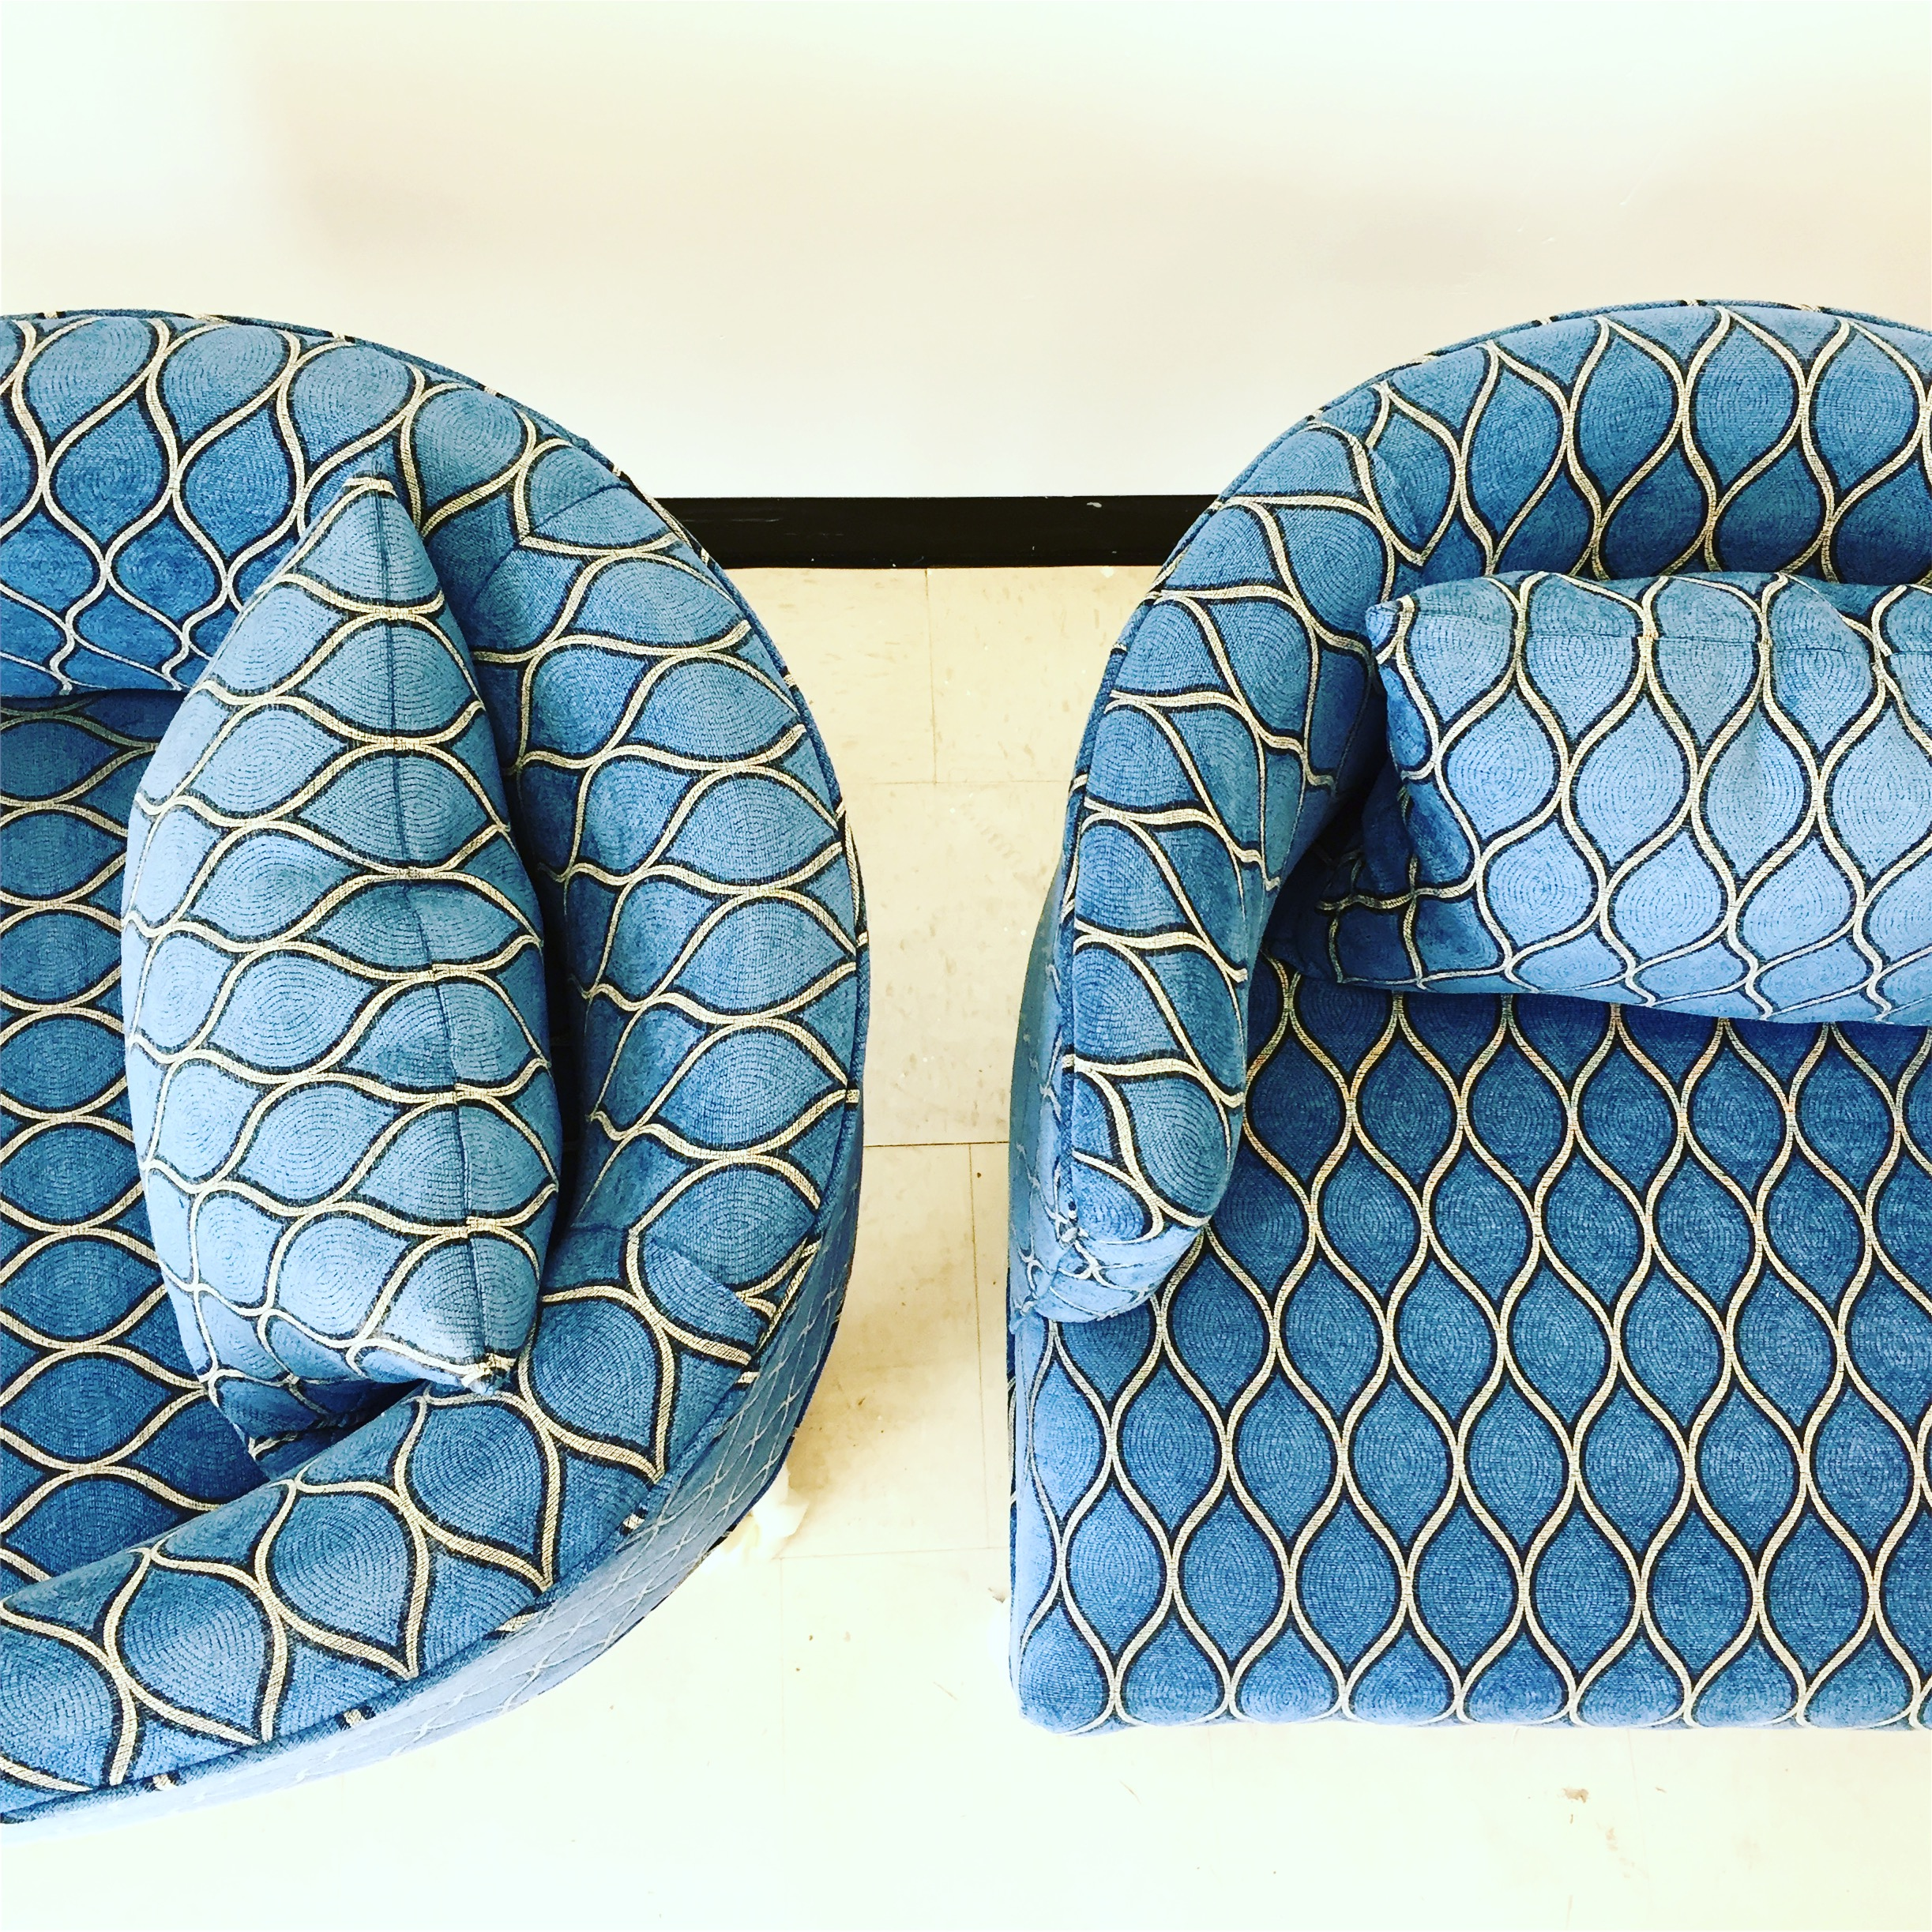 CUSTOM CHAIR FRAMES AND UPHOLSTERY